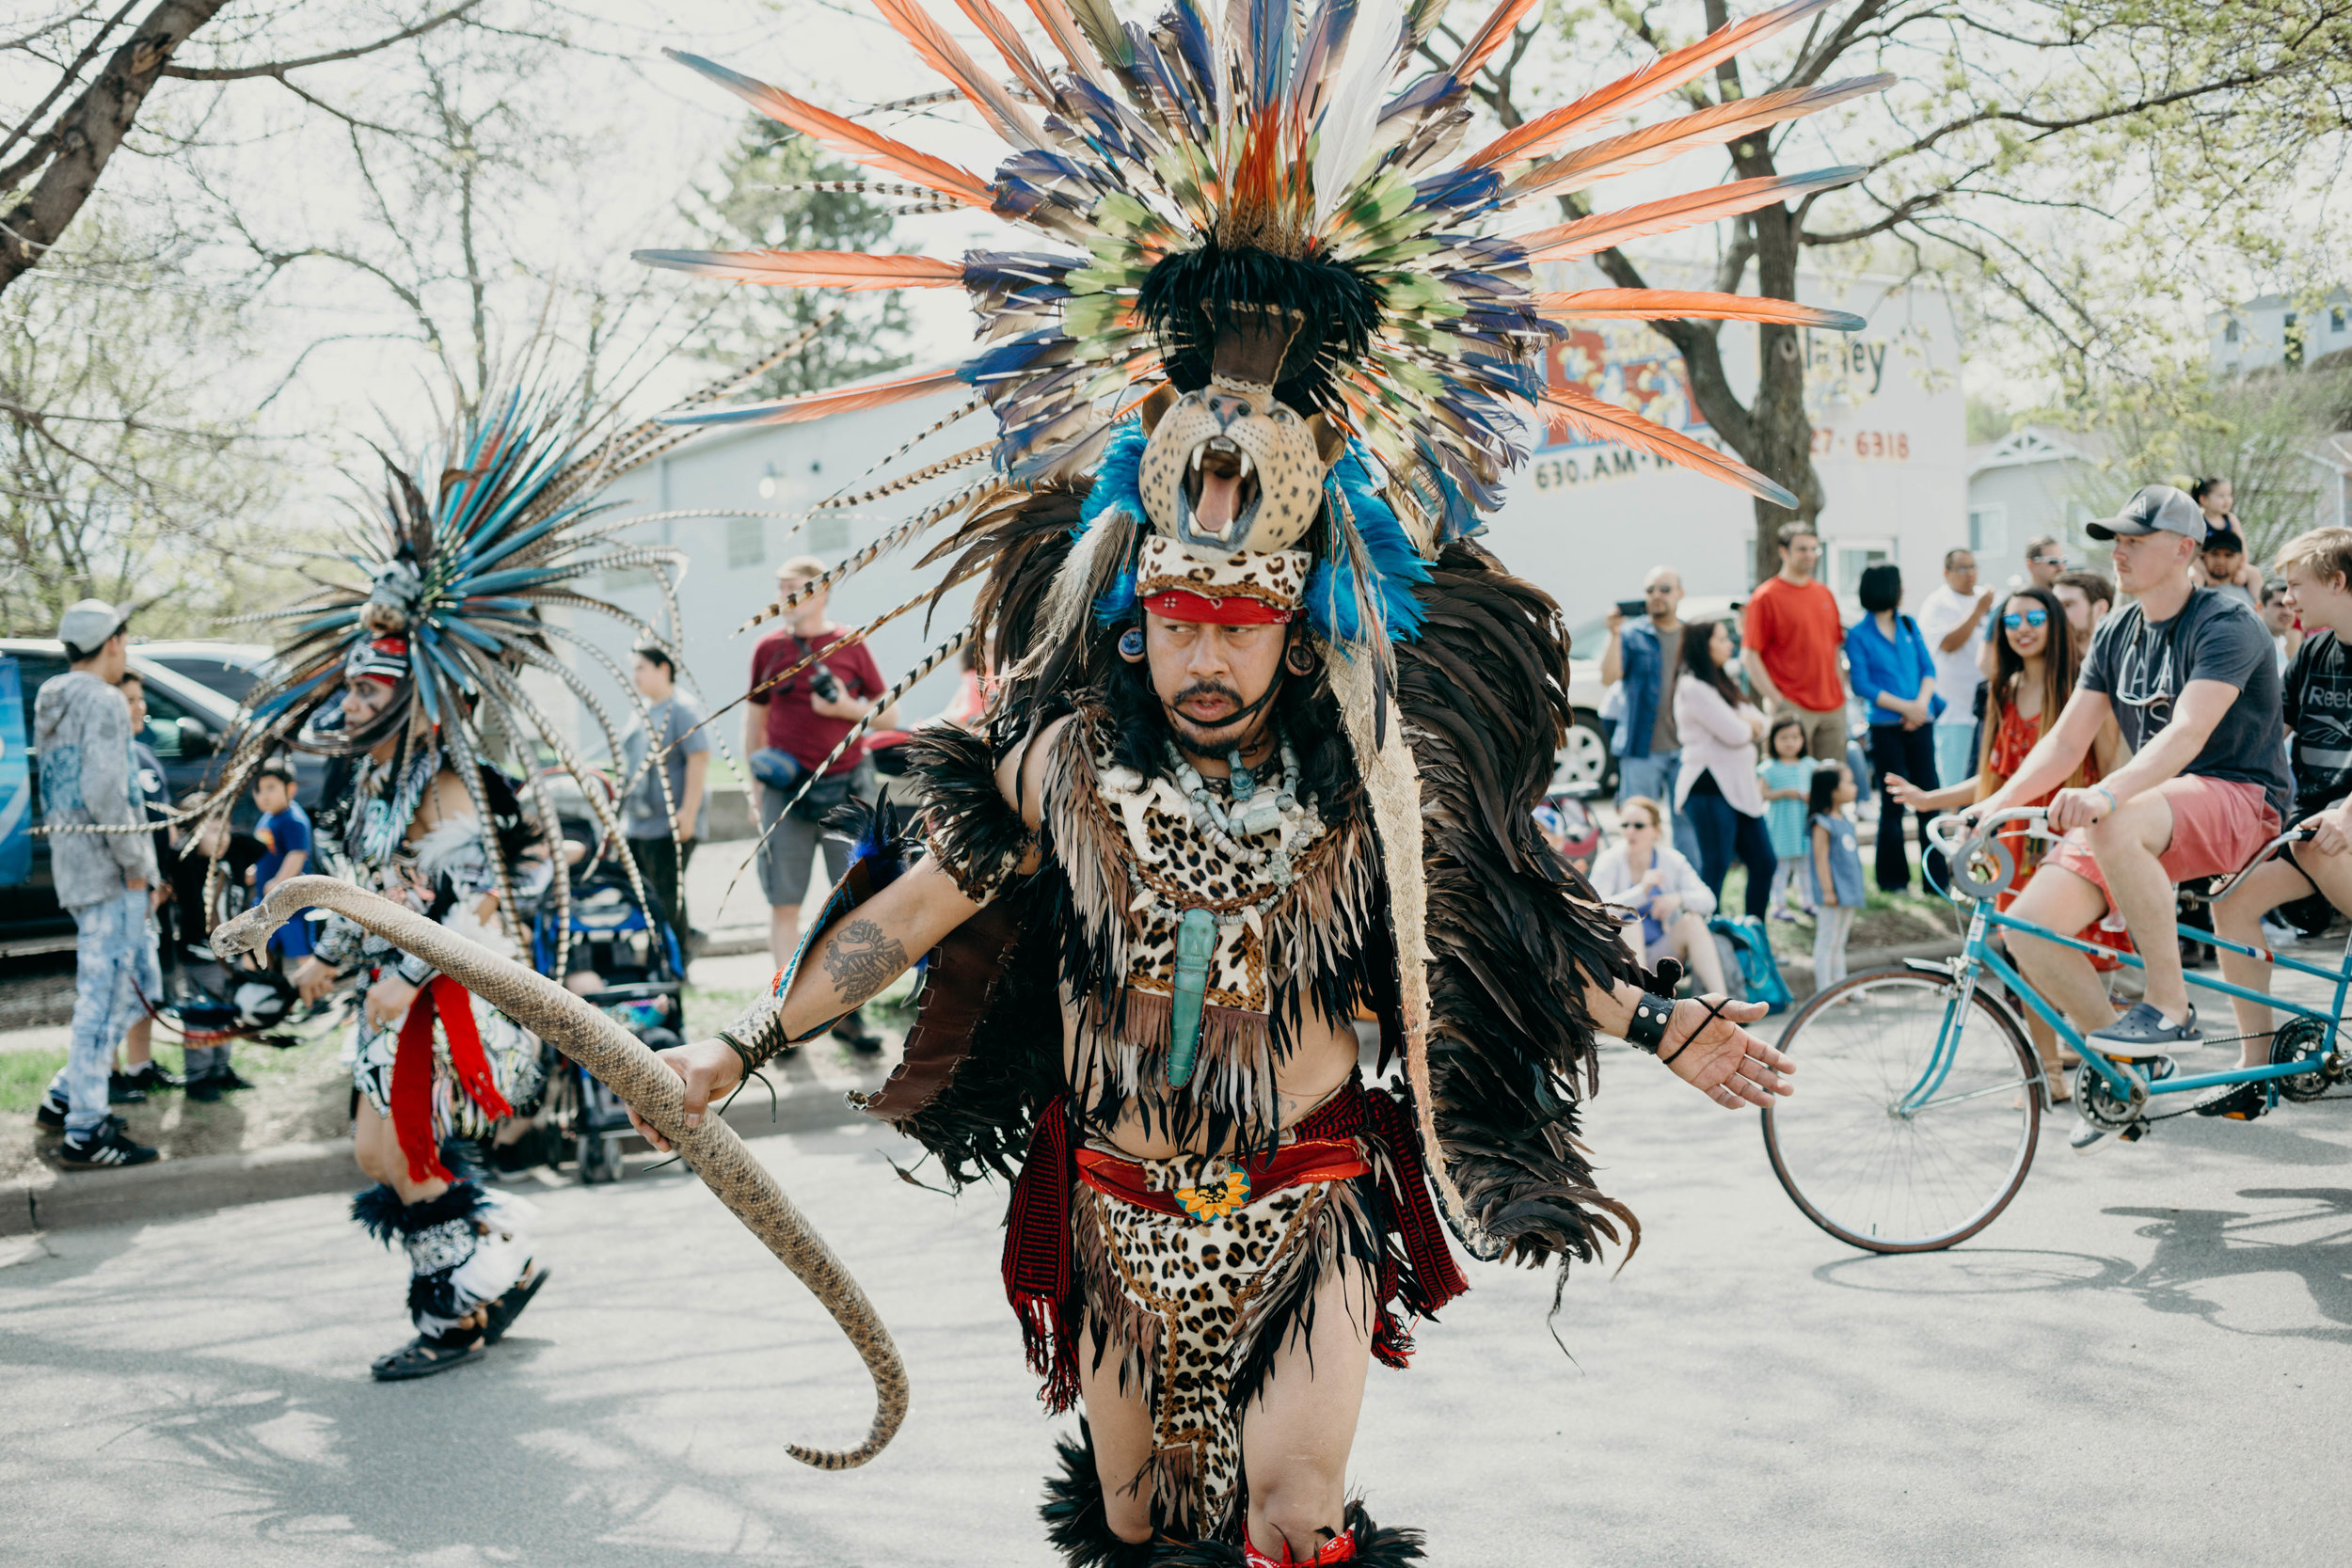 West Saint Paul has the best Cinco de Mayo celebration in the Twin Cities - The parade along Cesar Chavez Street is the perfect location for this festival. Aztec dancers take to the street to show off the Concheros dance.